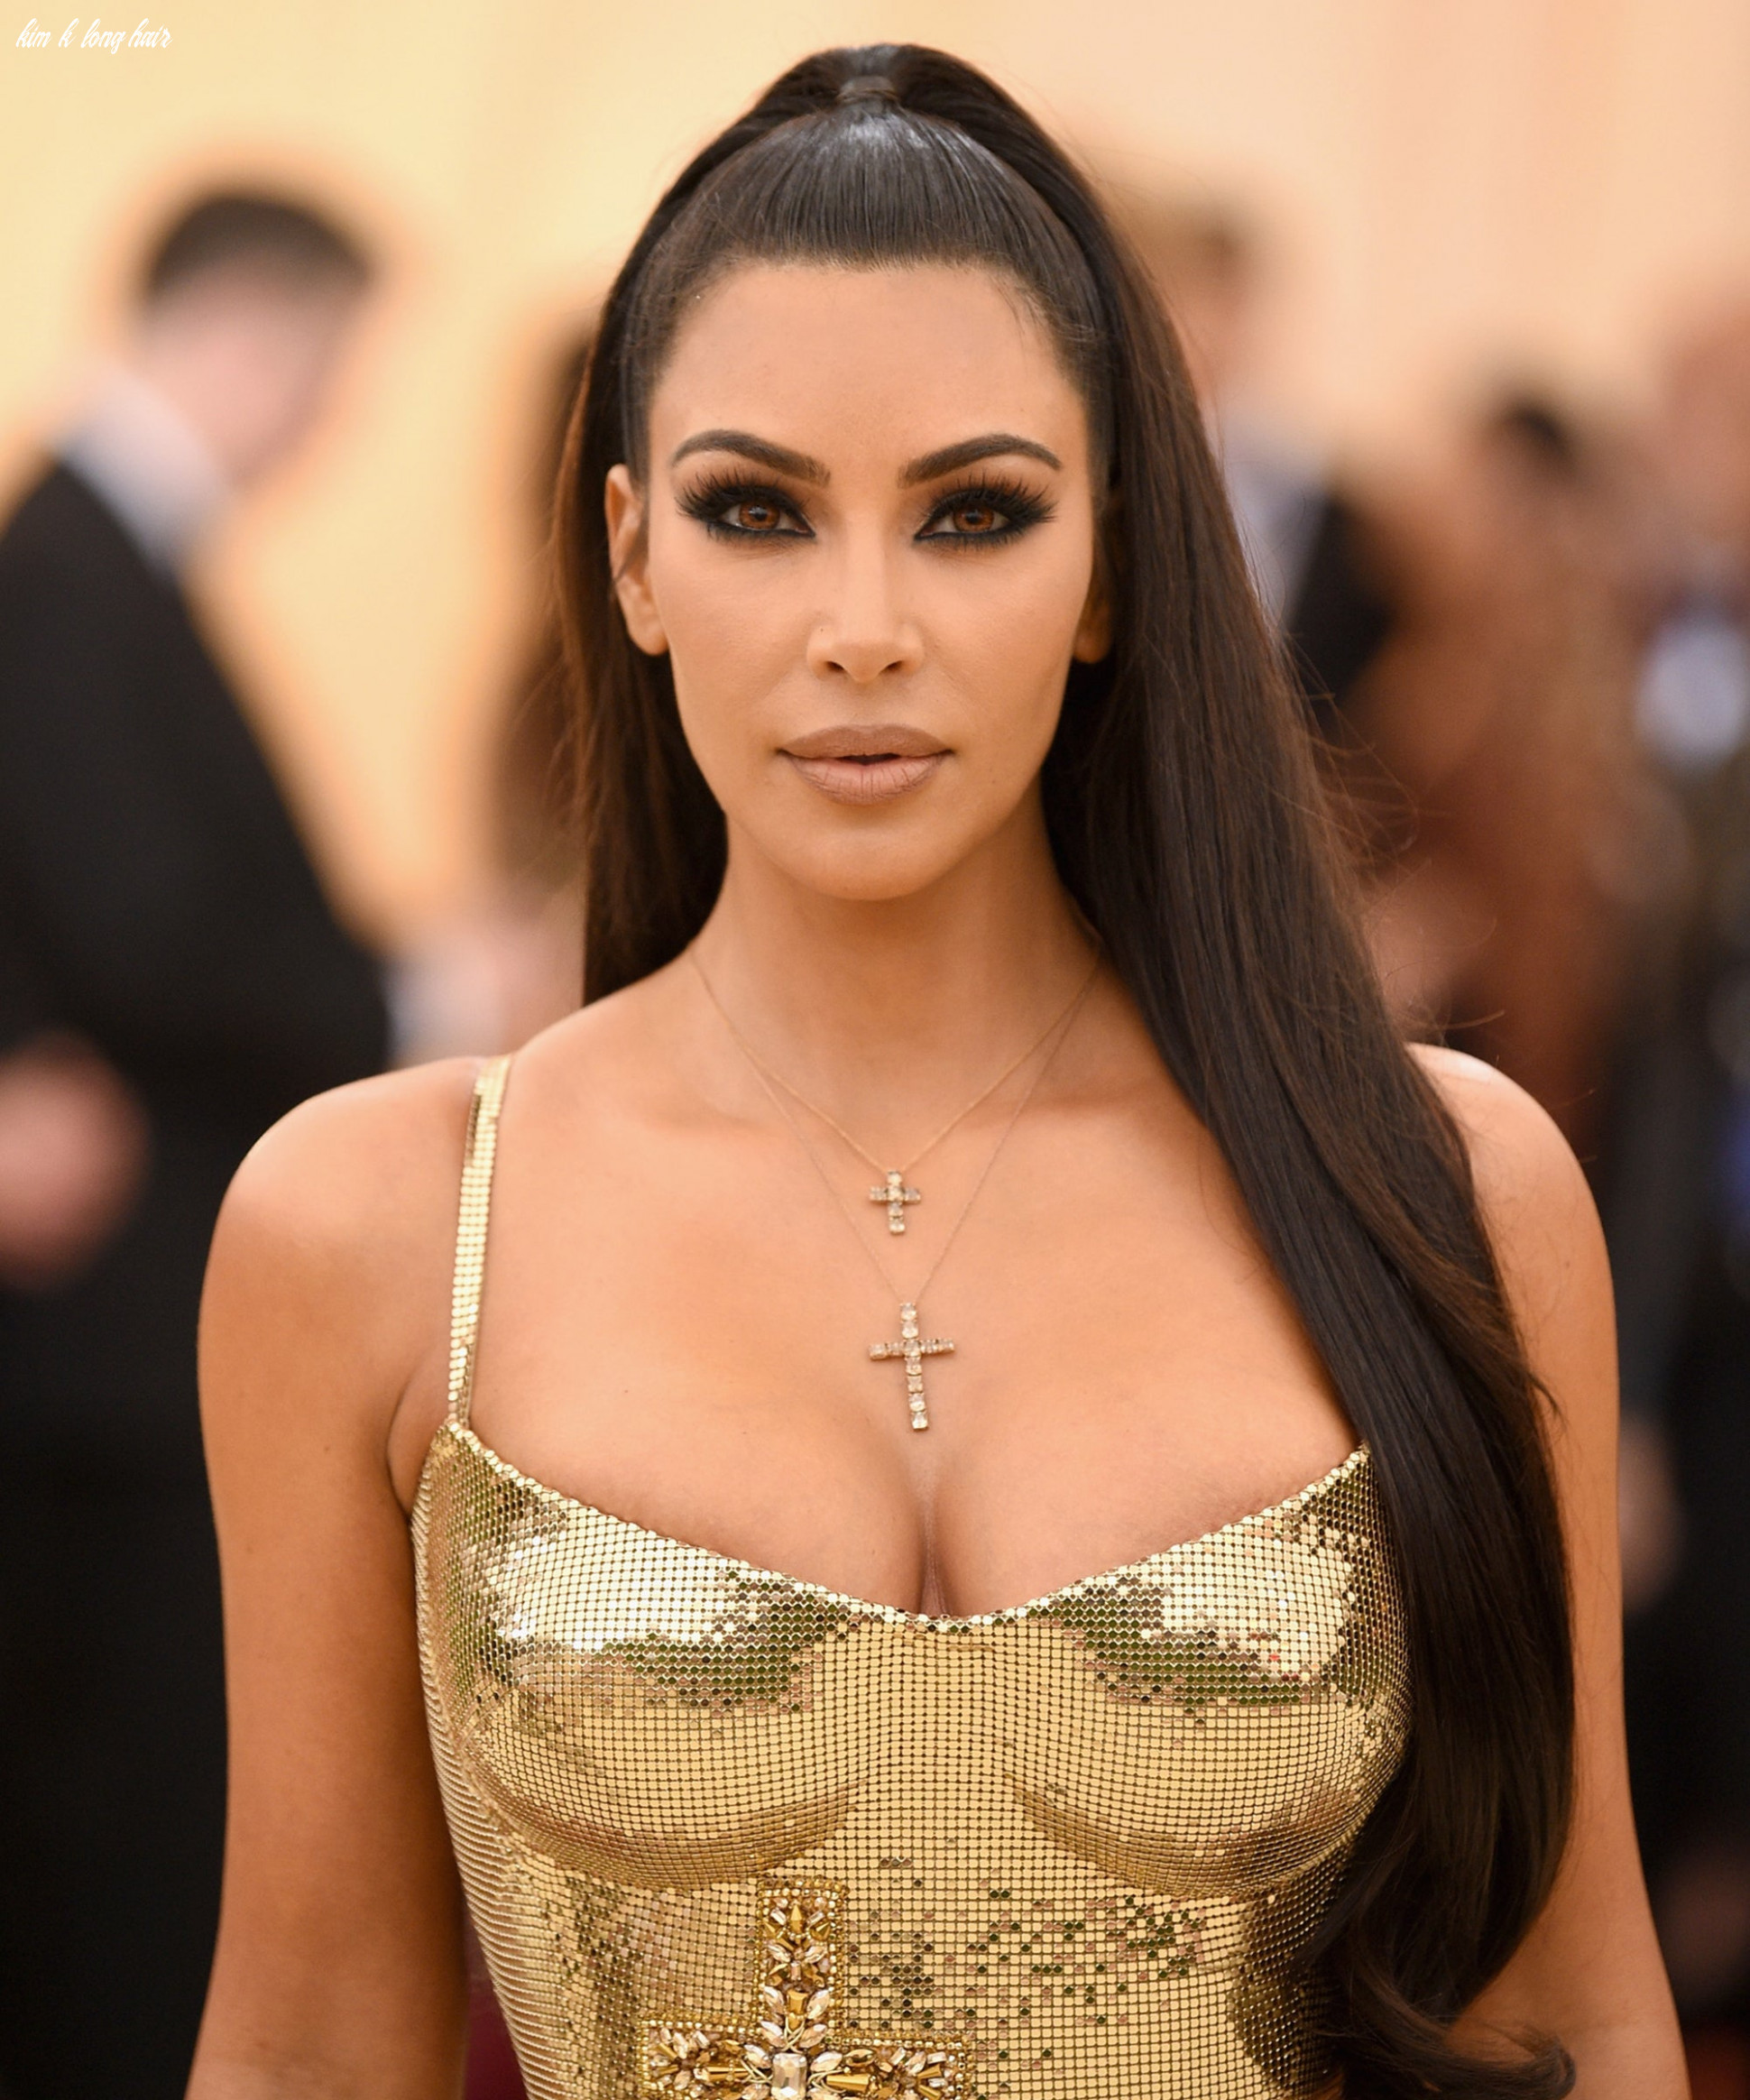 Kim Kardashian Best Hairstyles And Looks Of All Time